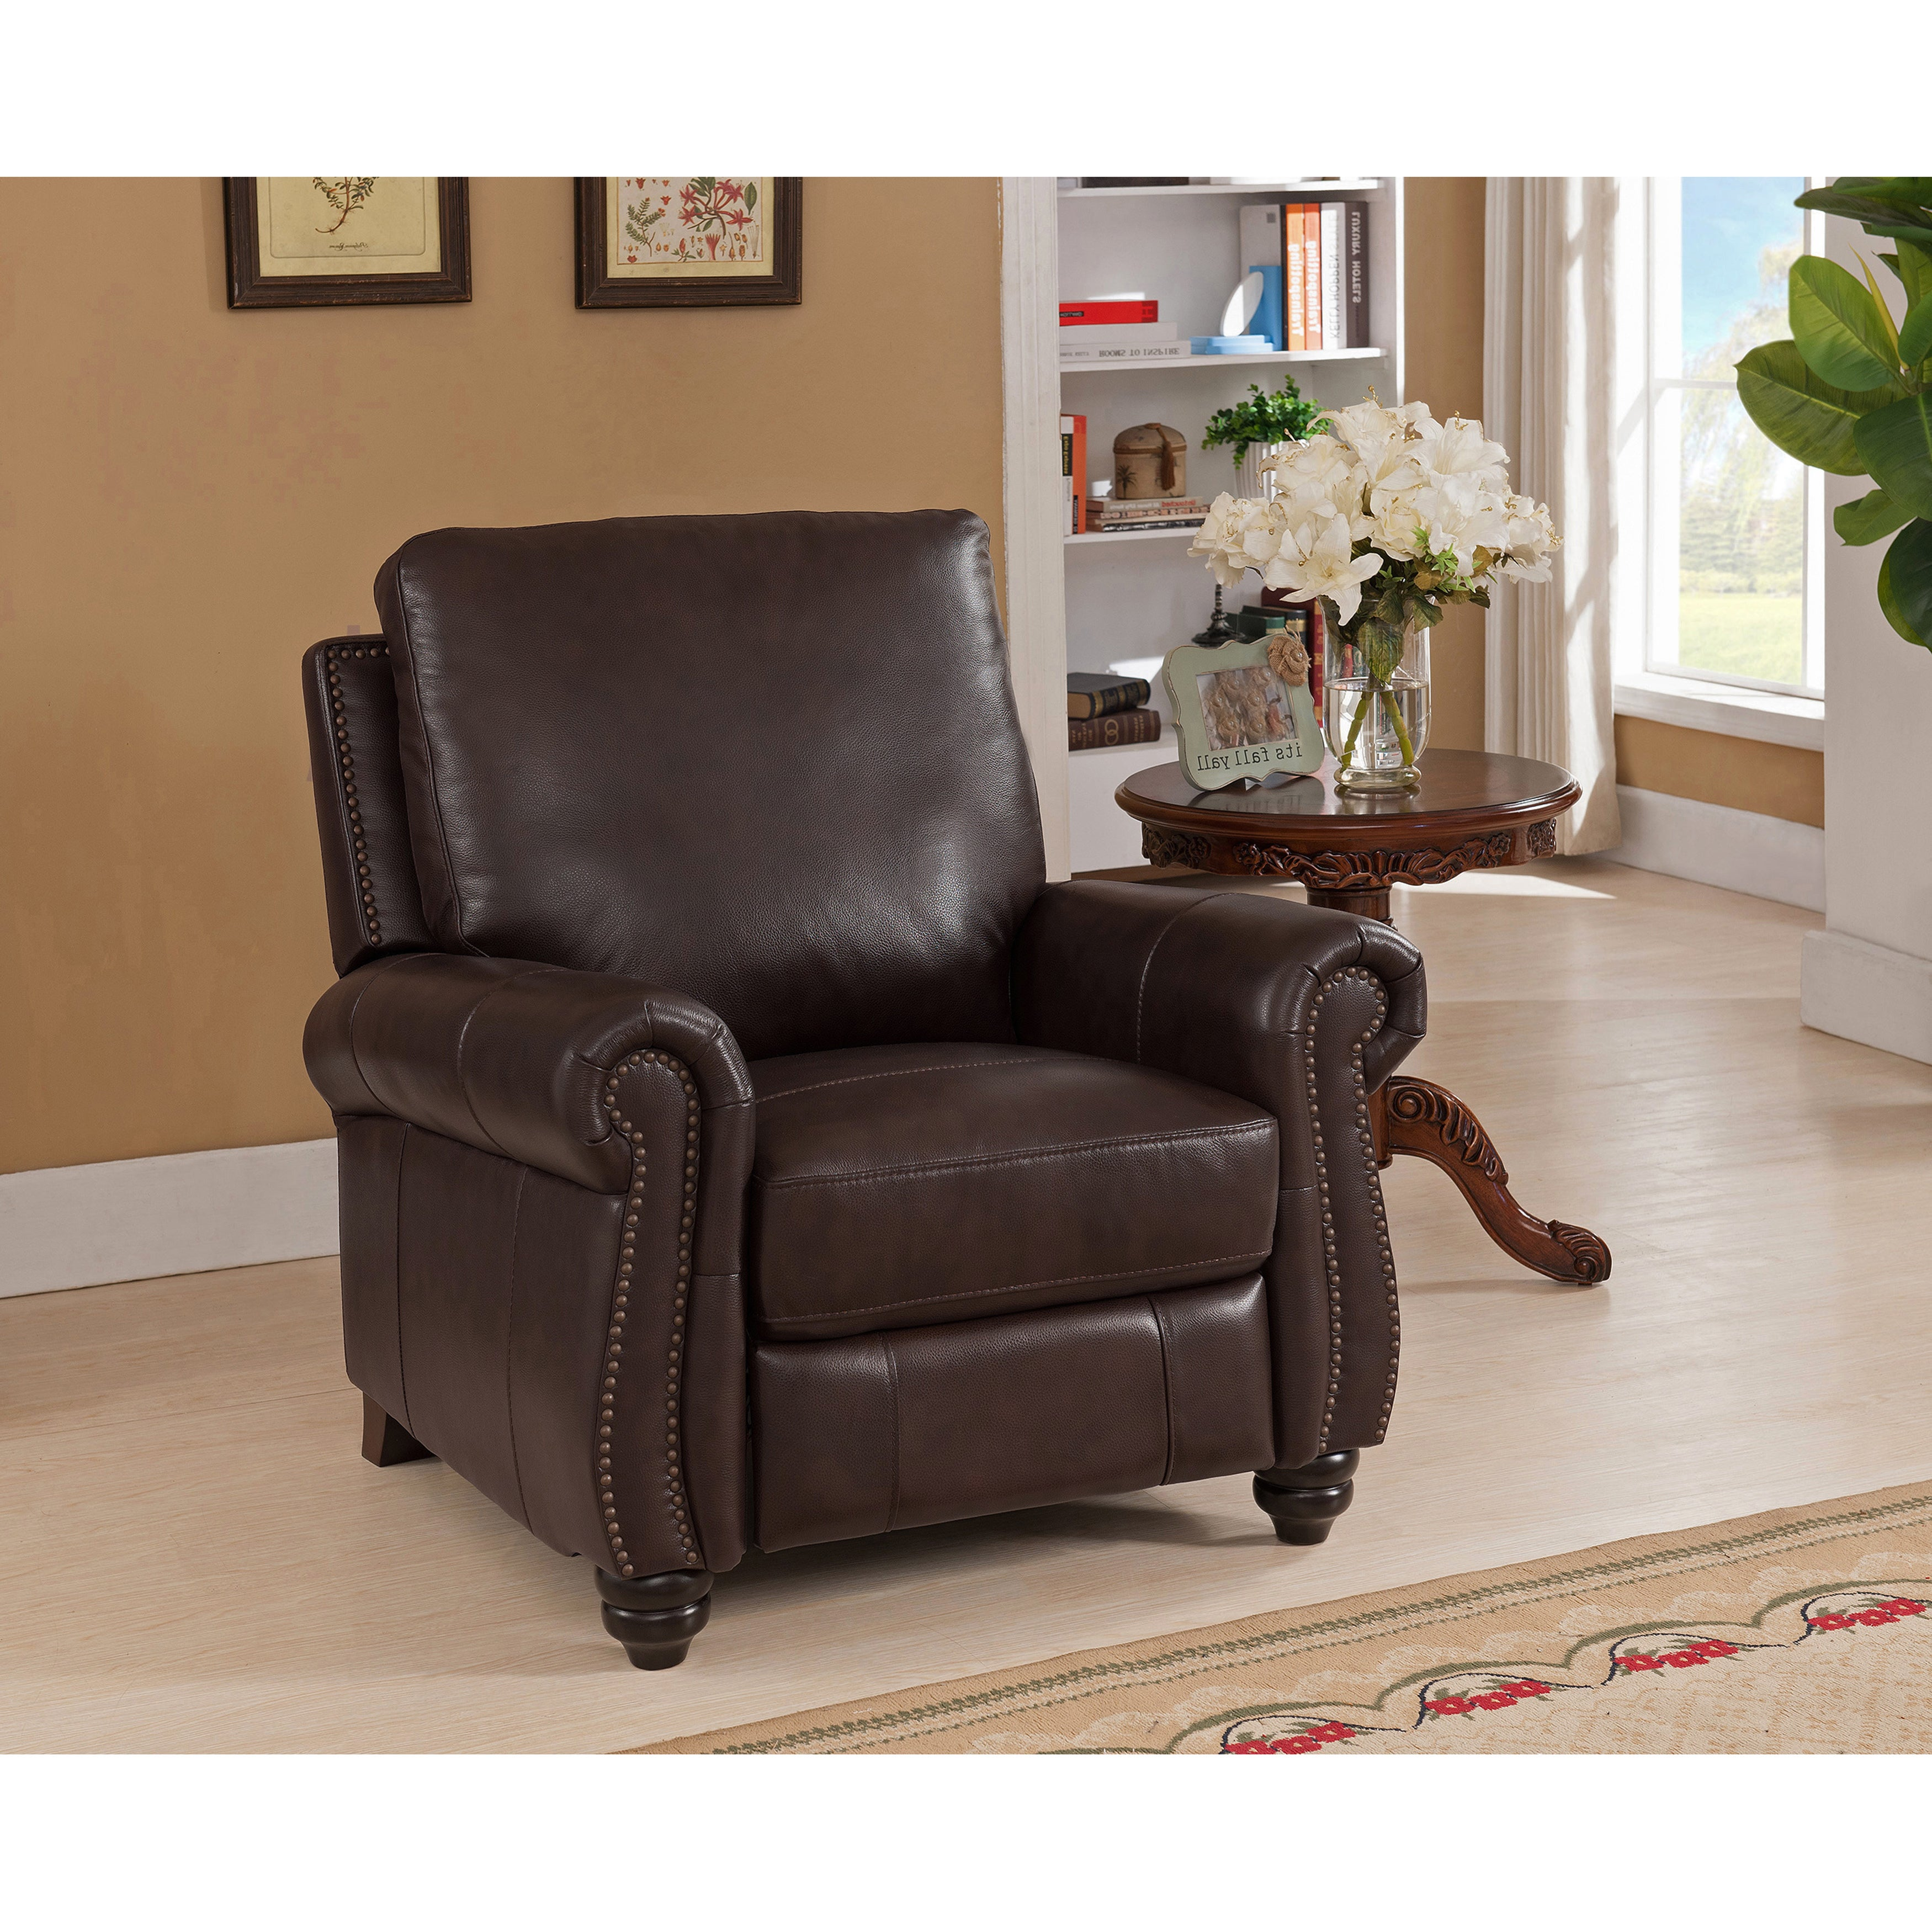 chair reclining width faux resize products url seater leather cloudfront sofa net black seat brown recliner armchair